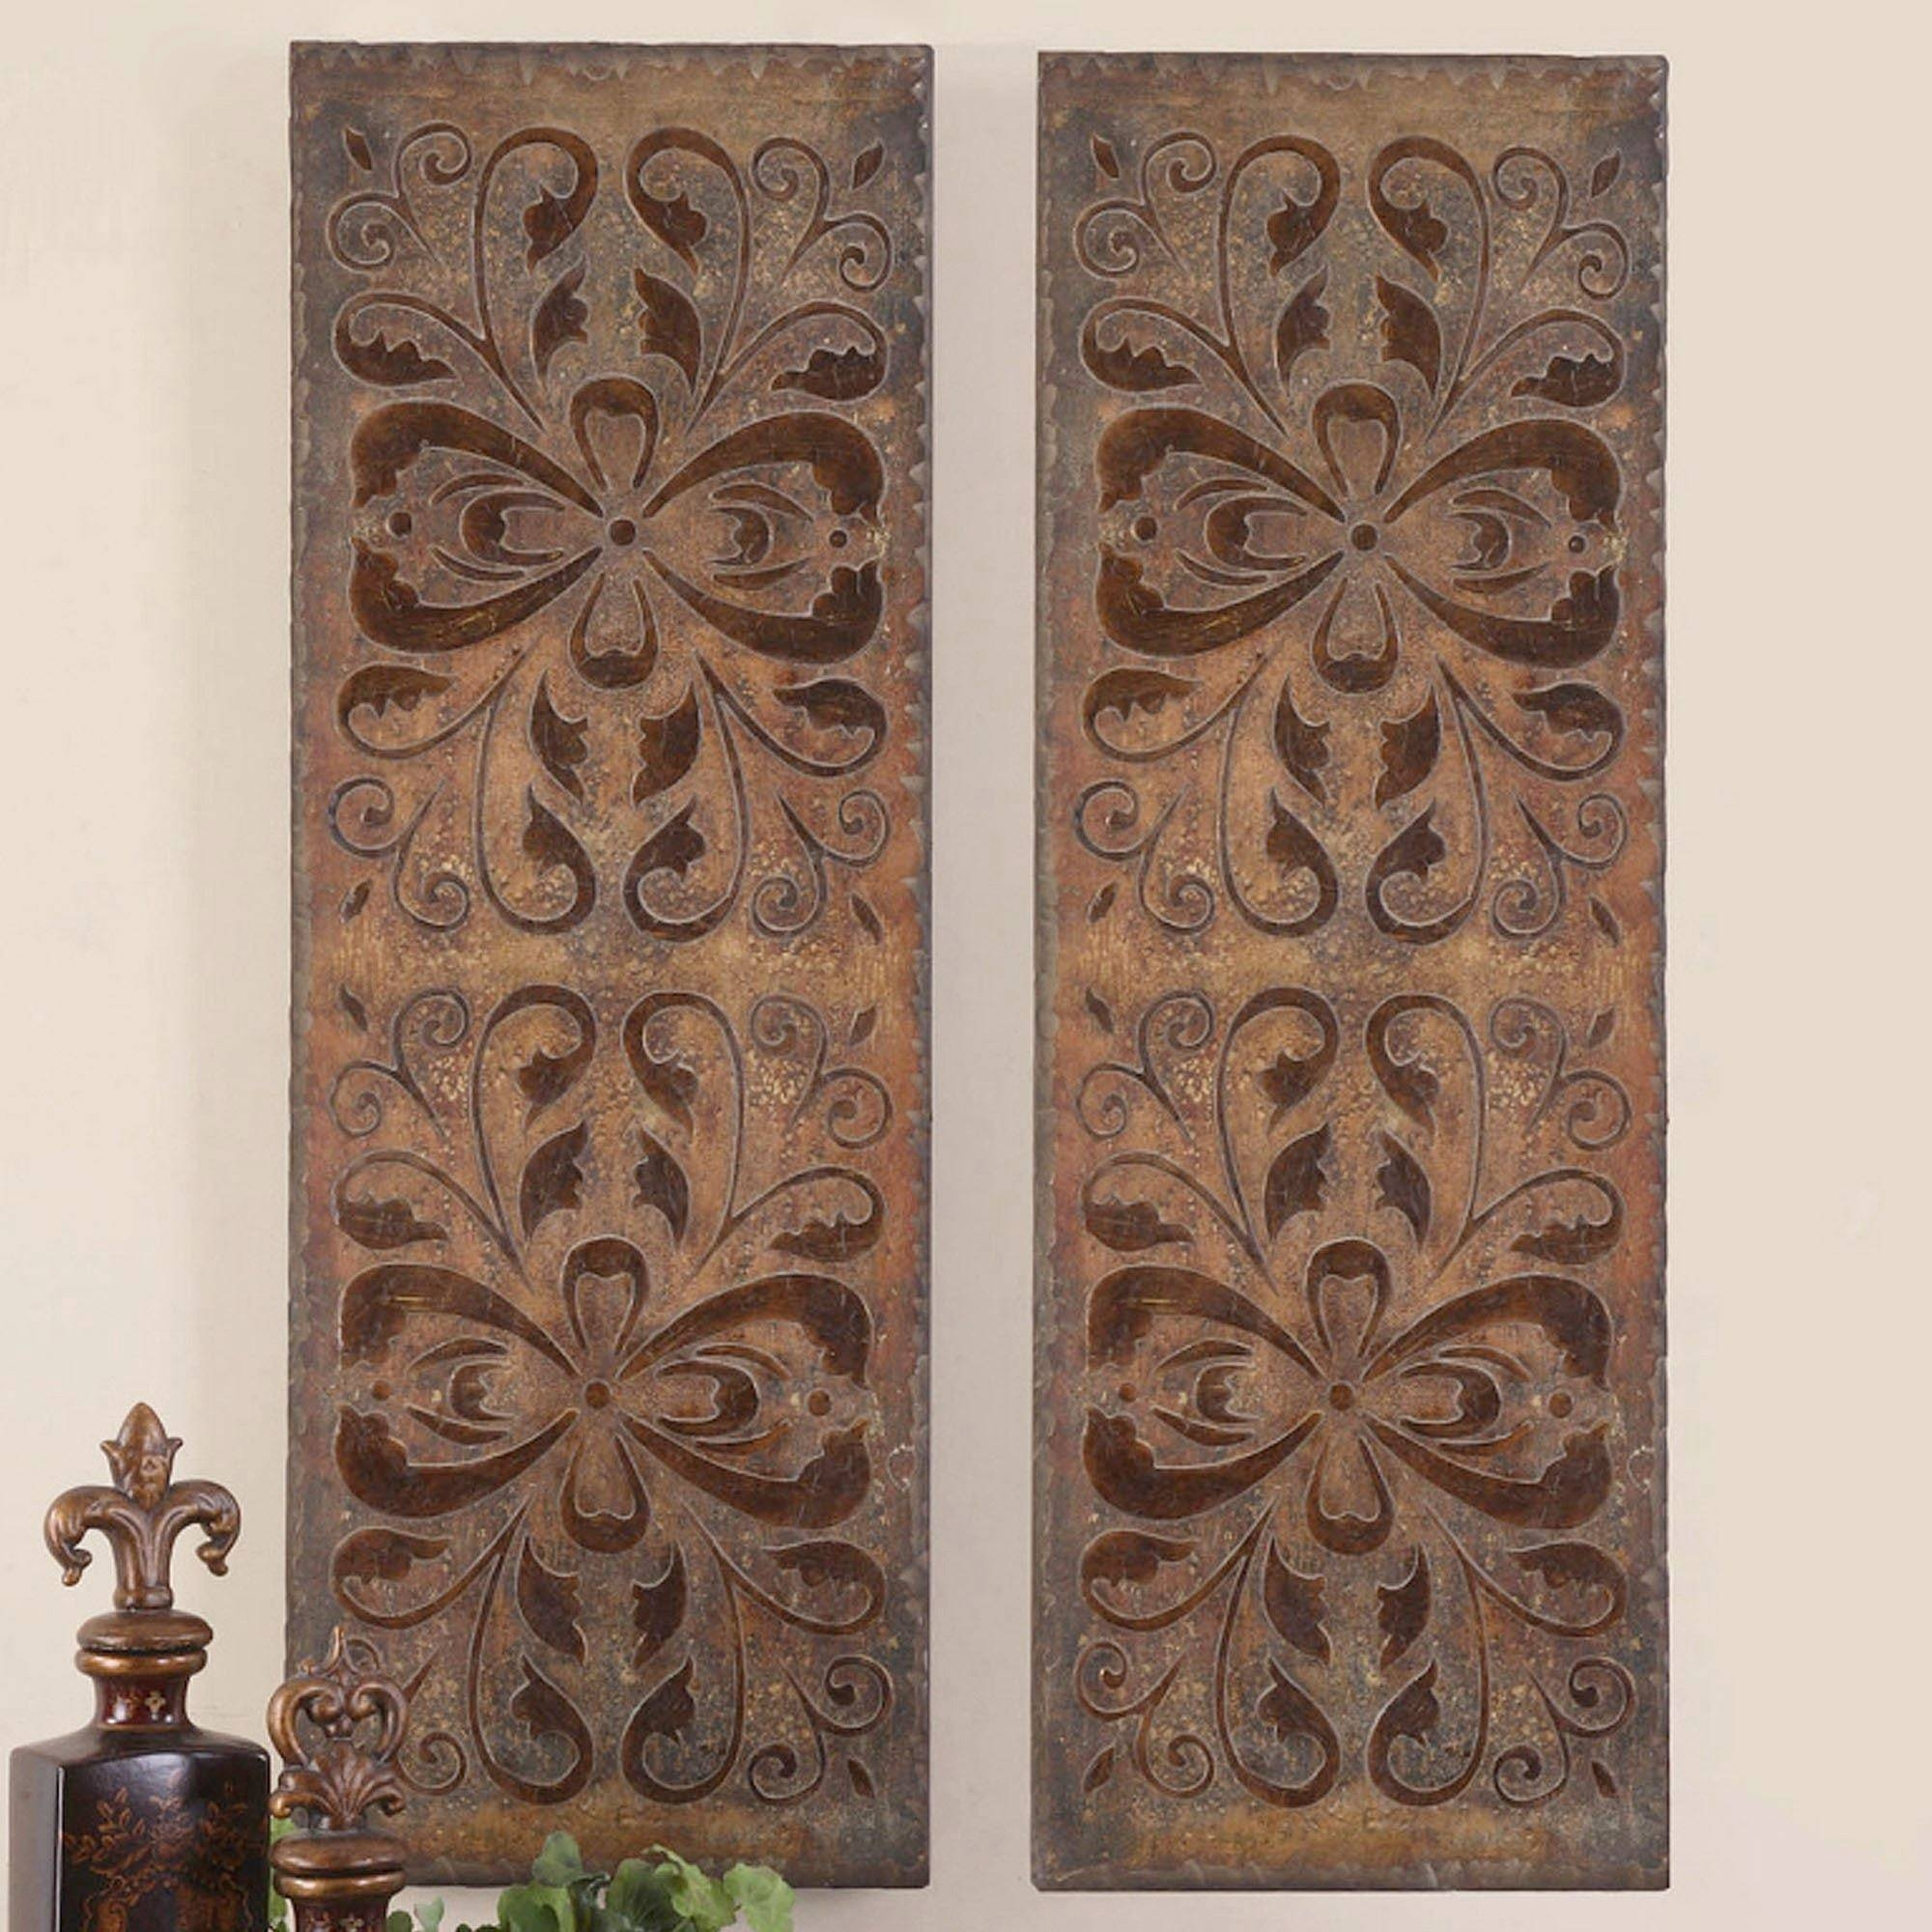 Wooden Wall Art Panels Intended For Recent Wooden Wall Art Panels (View 20 of 20)